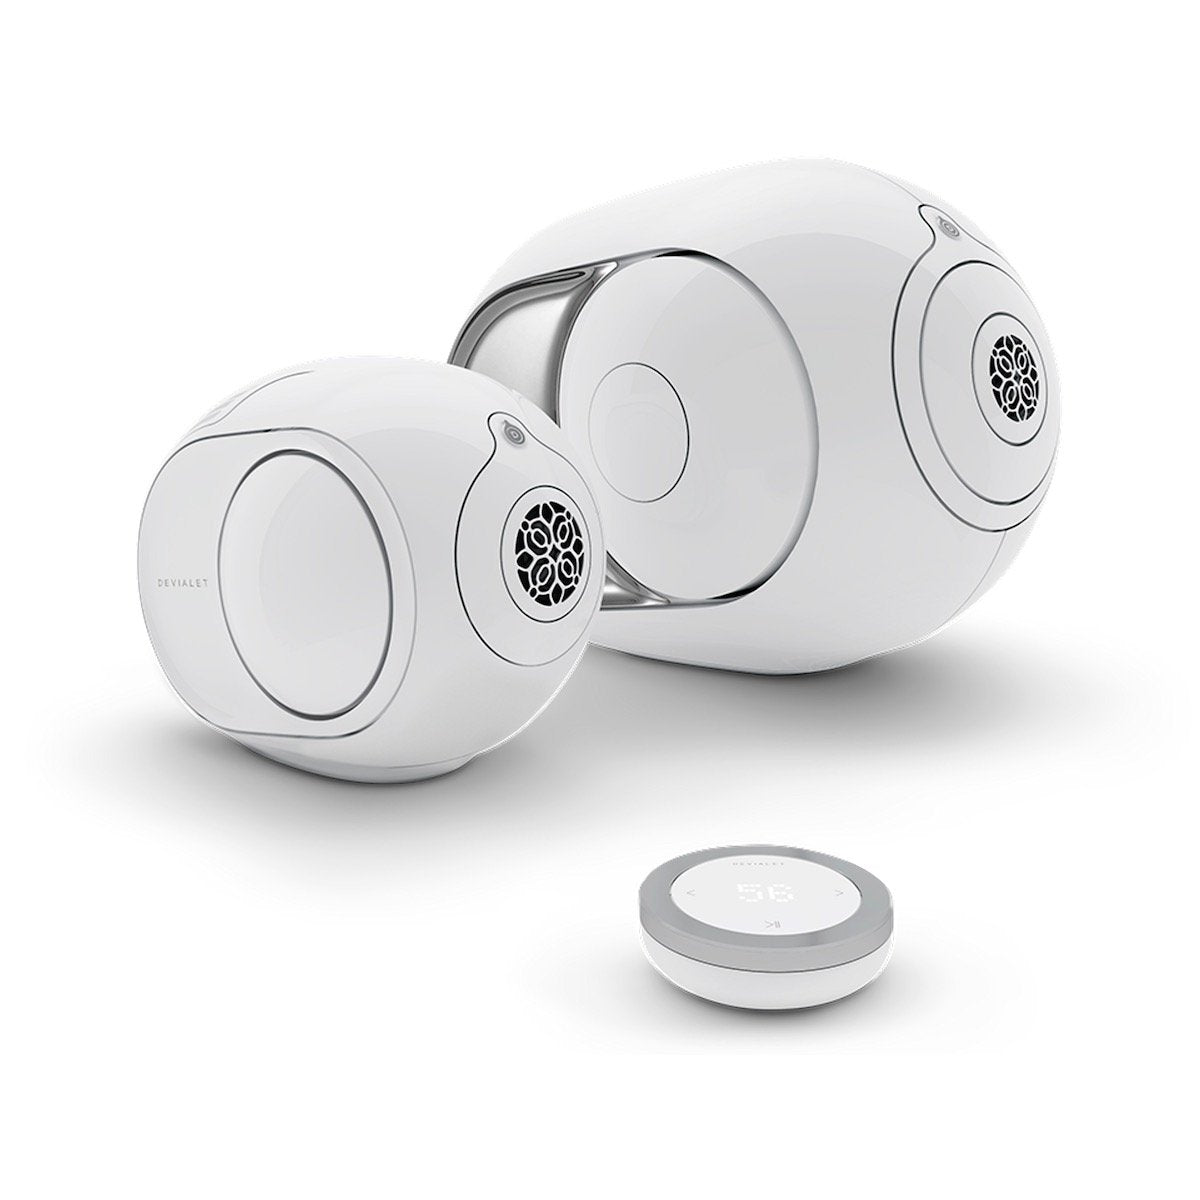 DEVIALET REMOTE, Devialet, Accessories - AVStore.in